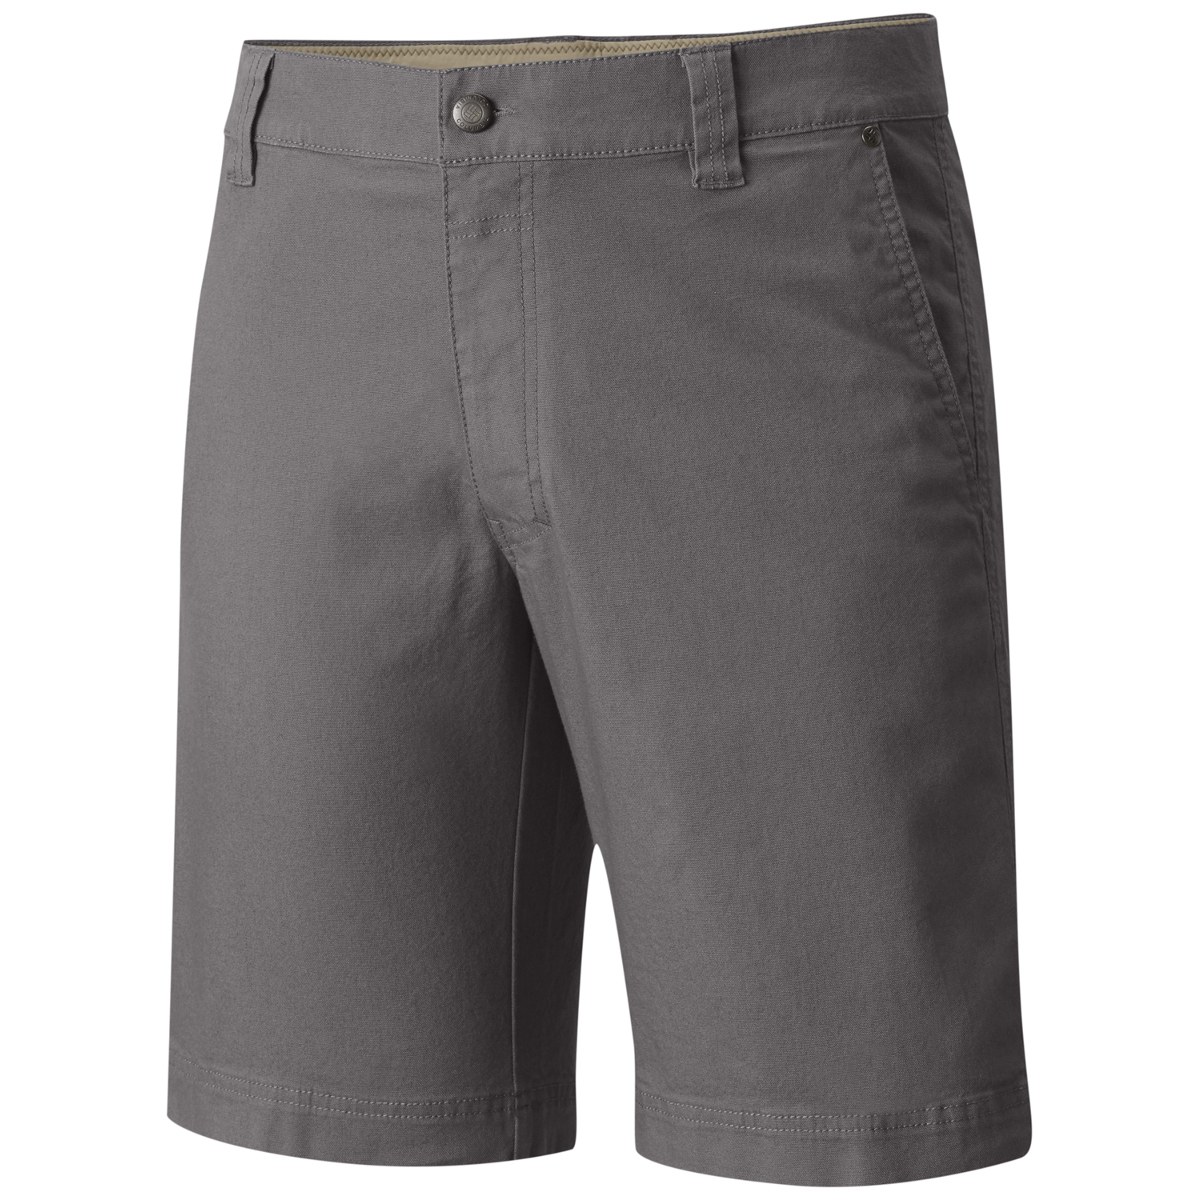 Columbia Men's 8 In. Flex Roc Short - Black, 42